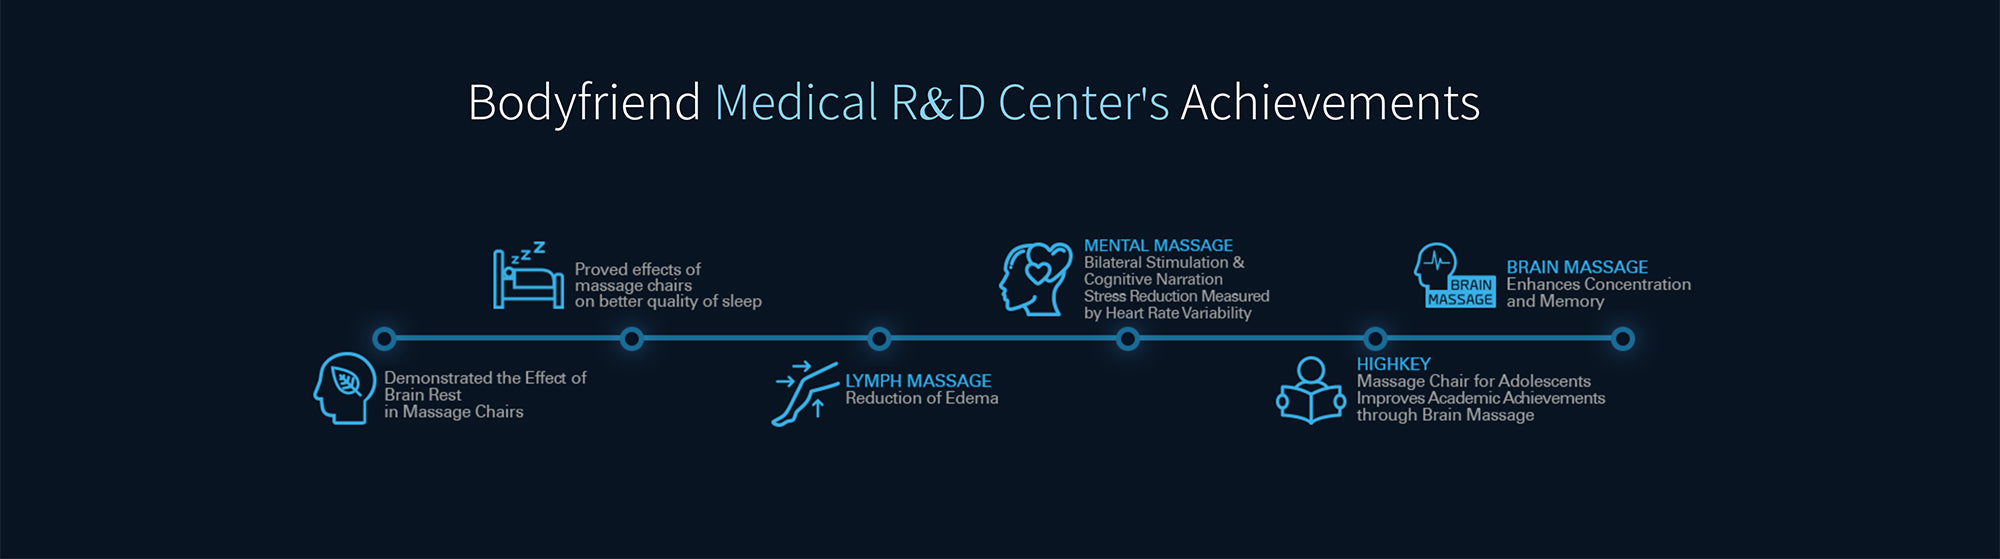 Bodyfriend Medical R&D Center's Achievements Includes Lymph Massage, Mental Massage, And Brain Massage